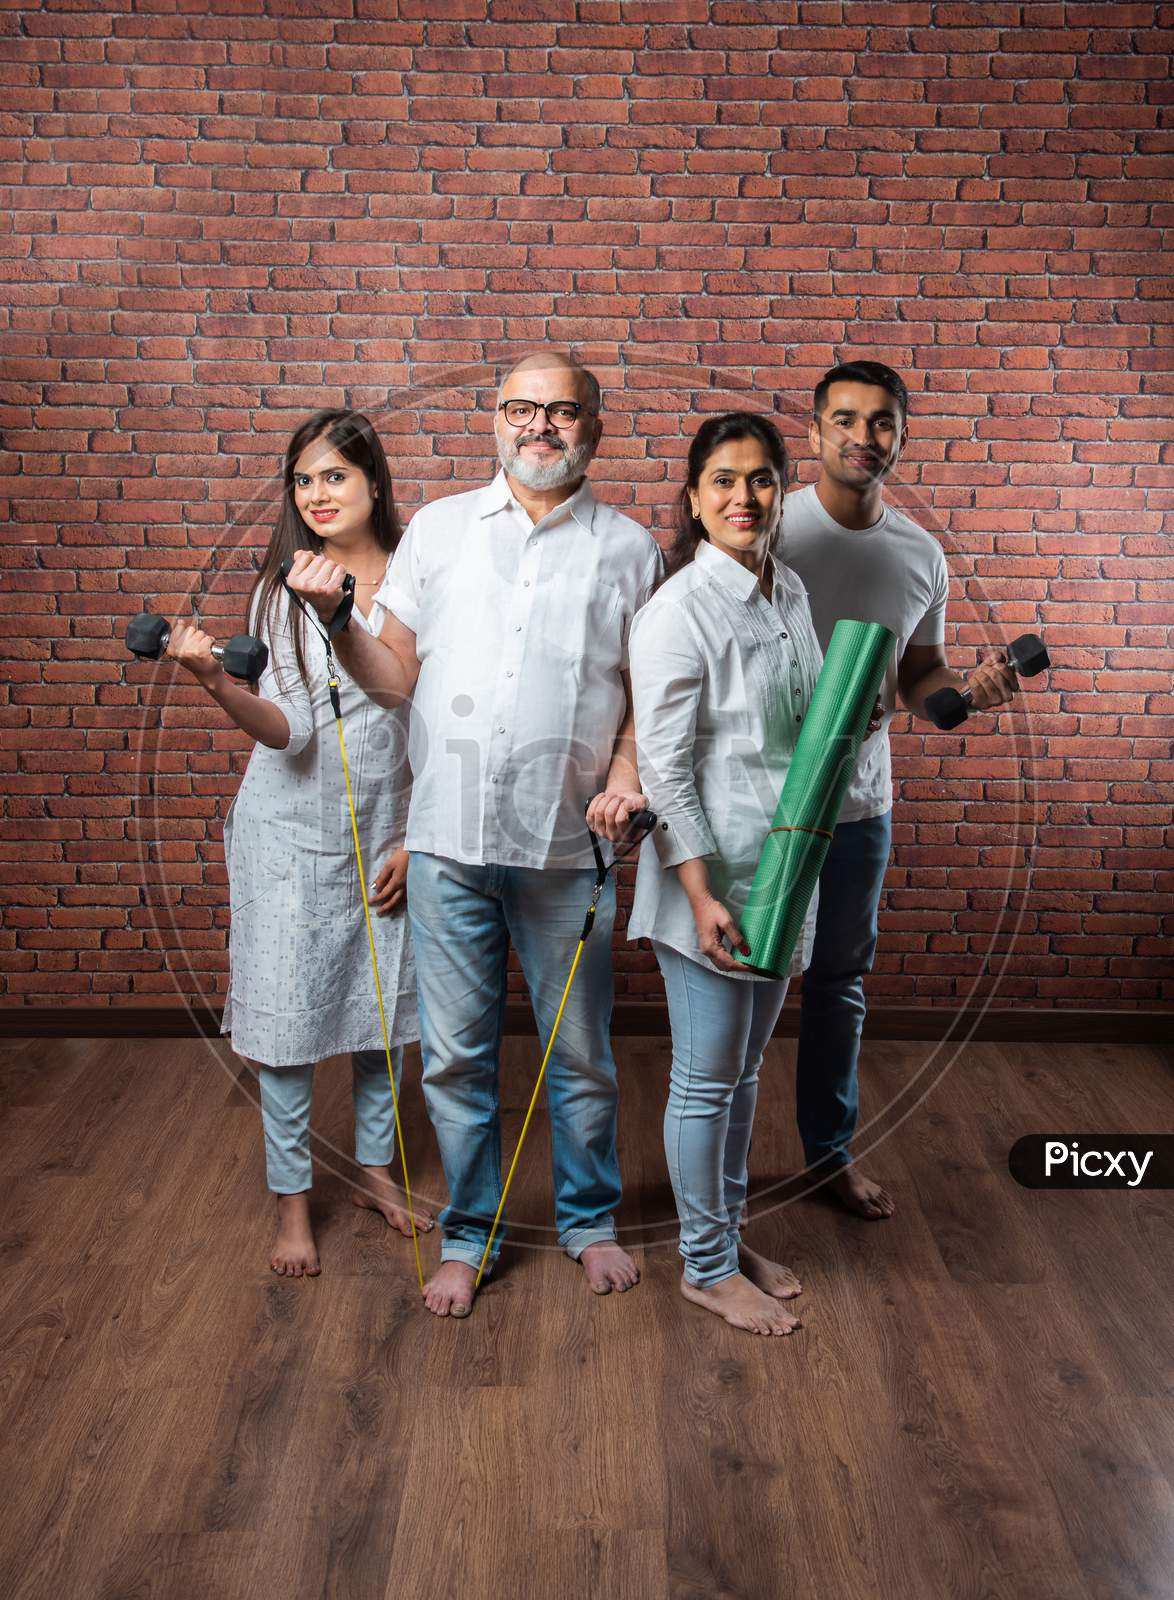 Indian Asian Family Exercising Together At Home - Healthy Lifestyle Concept